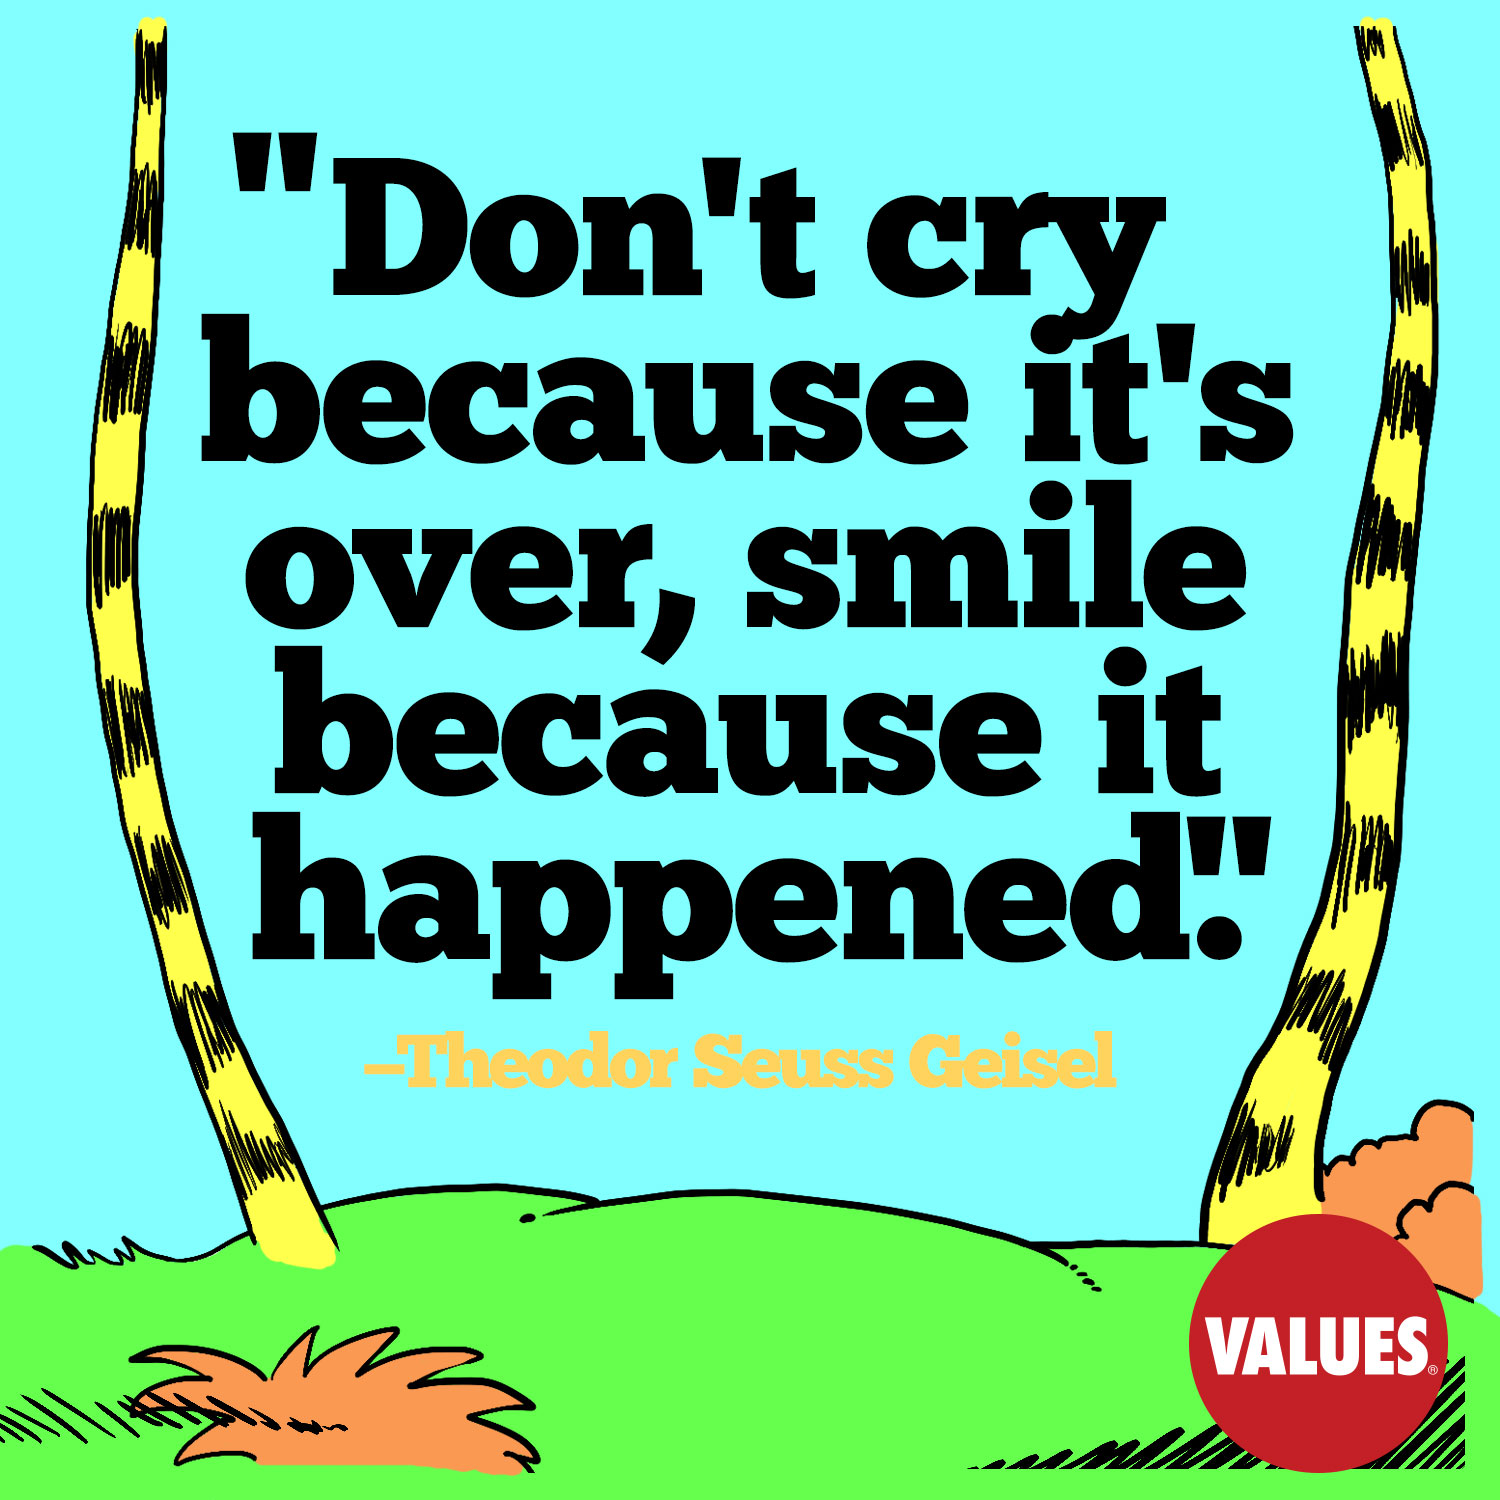 Don't cry because it's over, smile because it happened. —Theodor Seuss Geisel